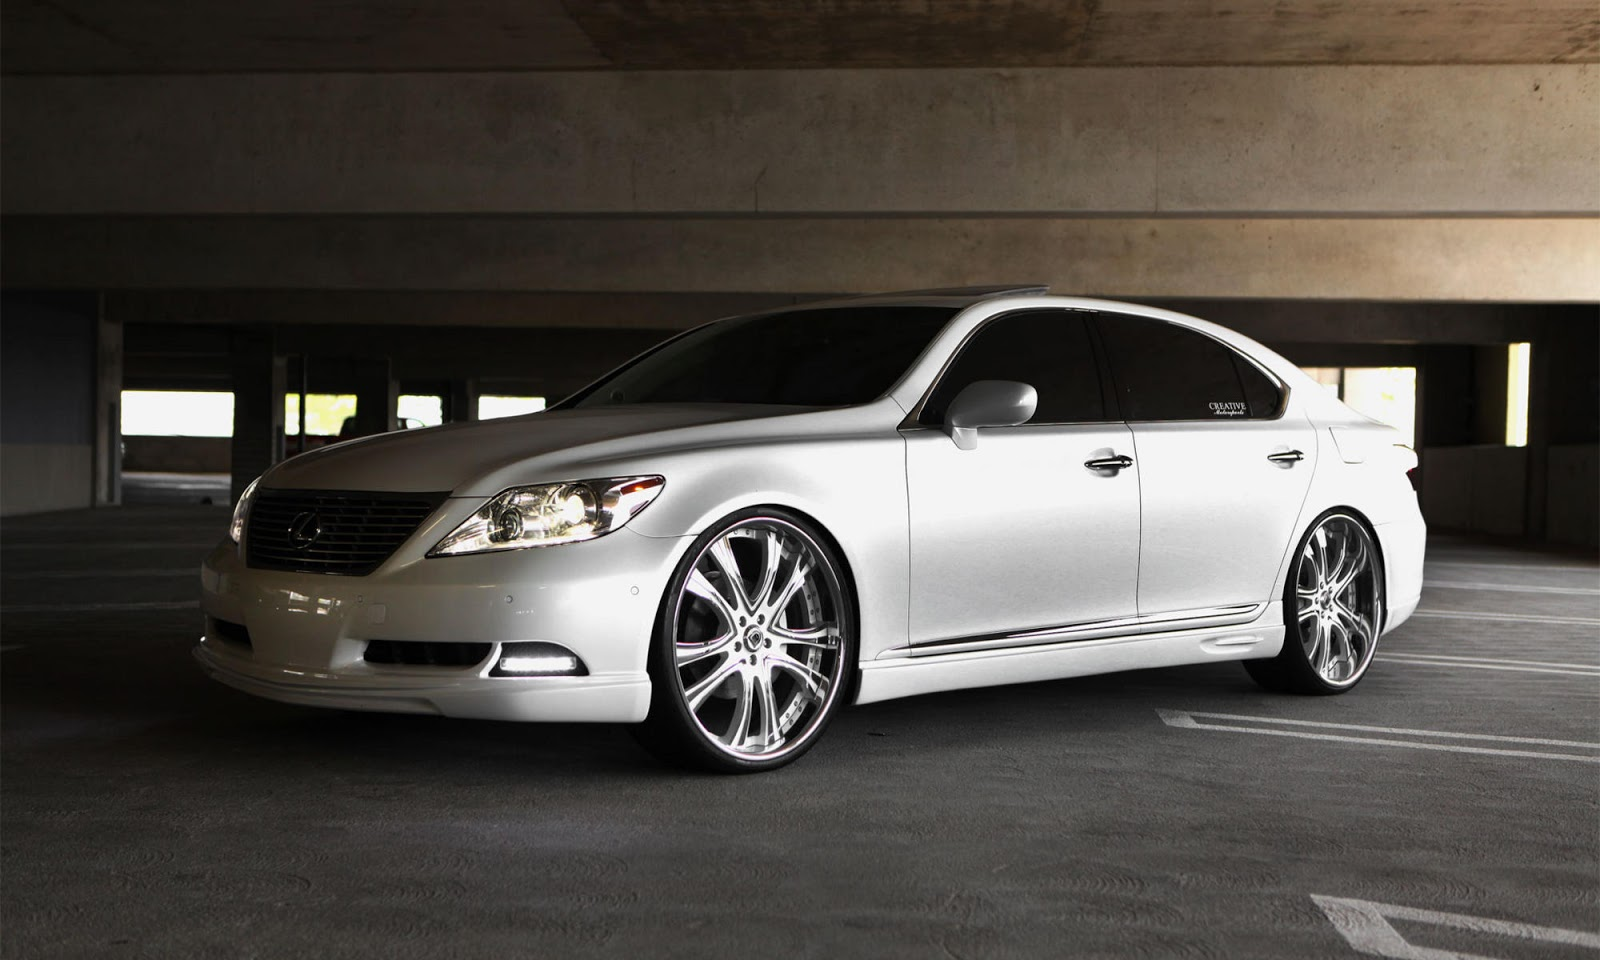 2010 lexus ls460 on 24 inch asanti af 159 rims only the cleanest